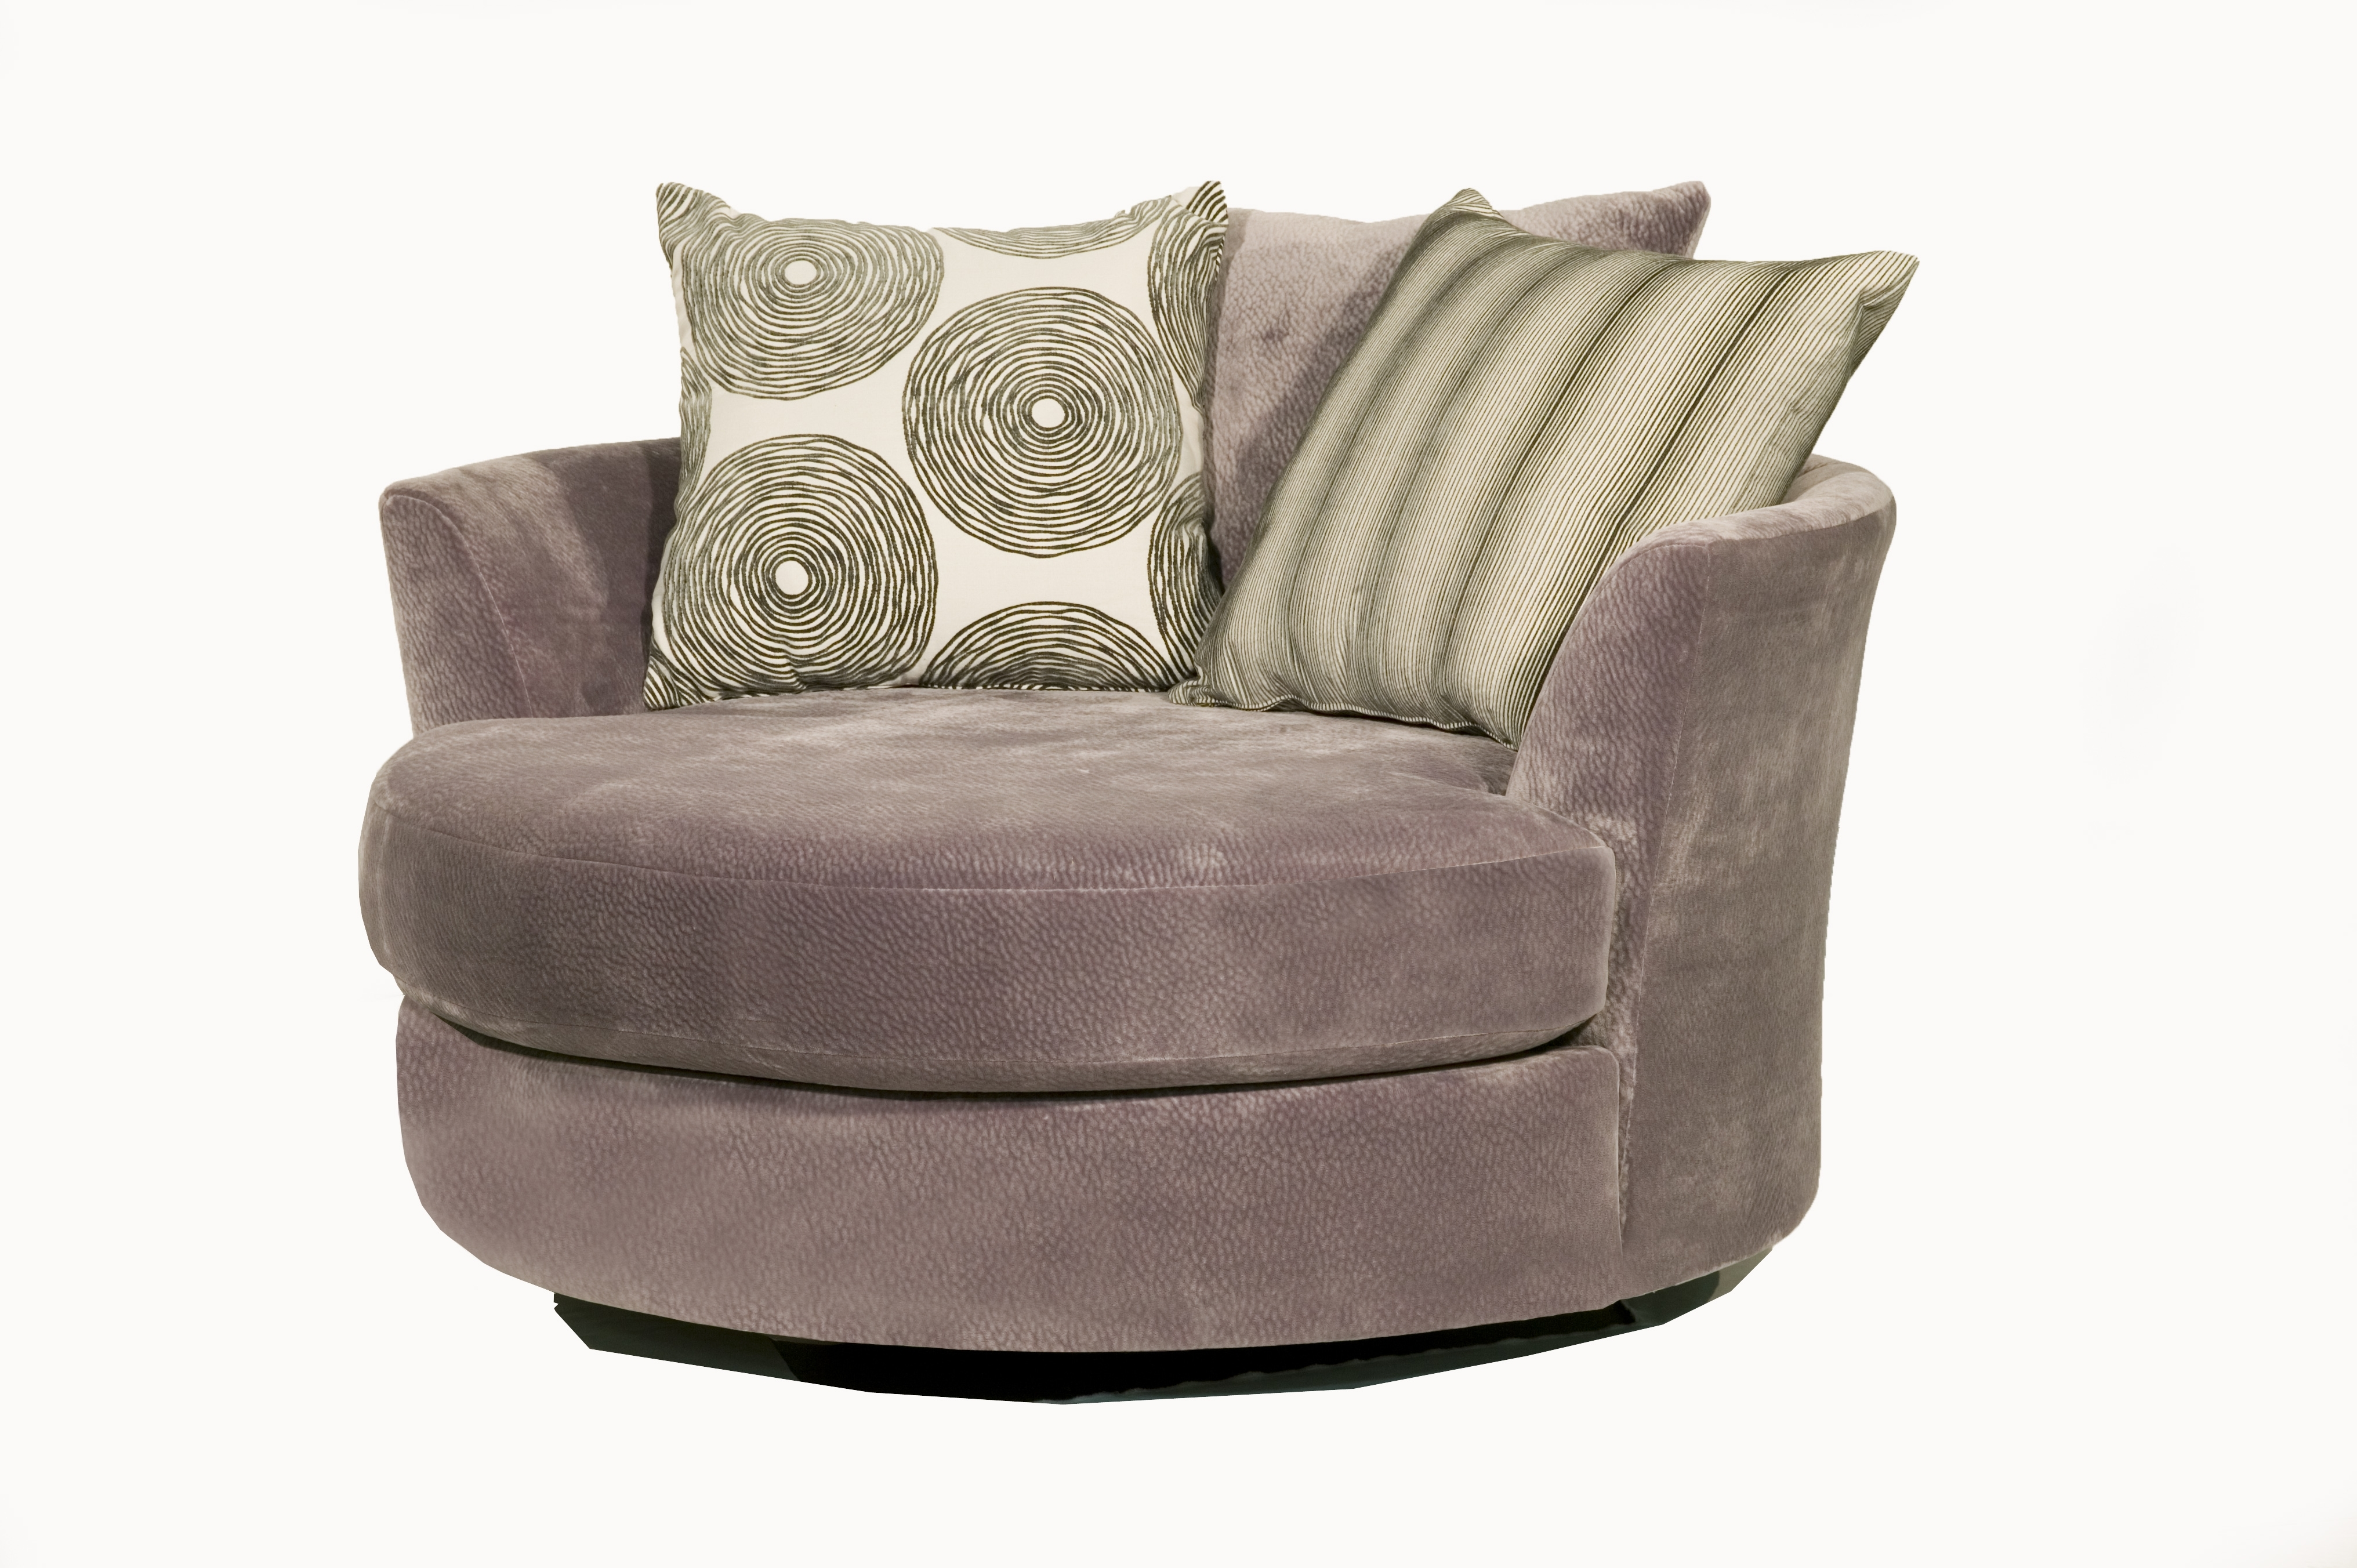 Sofas With Swivel Chair With Regard To Most Up To Date Jozz Round Swivel Chair (35 Photos) (View 17 of 20)